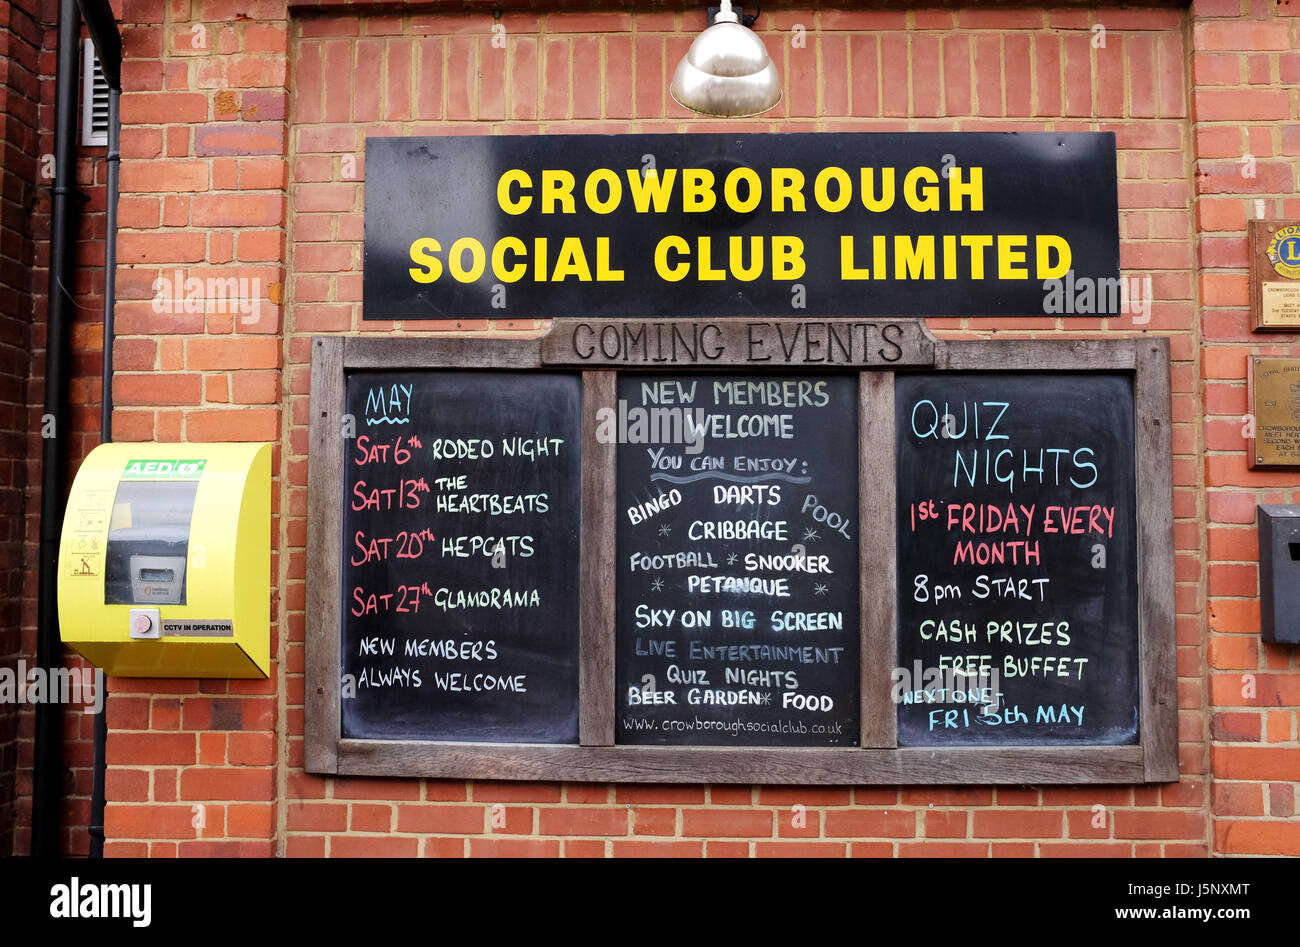 Crowborough East Sussex UK - défibrillateur public sur le mur par Crowborough Social Club d'affichage Photo Stock